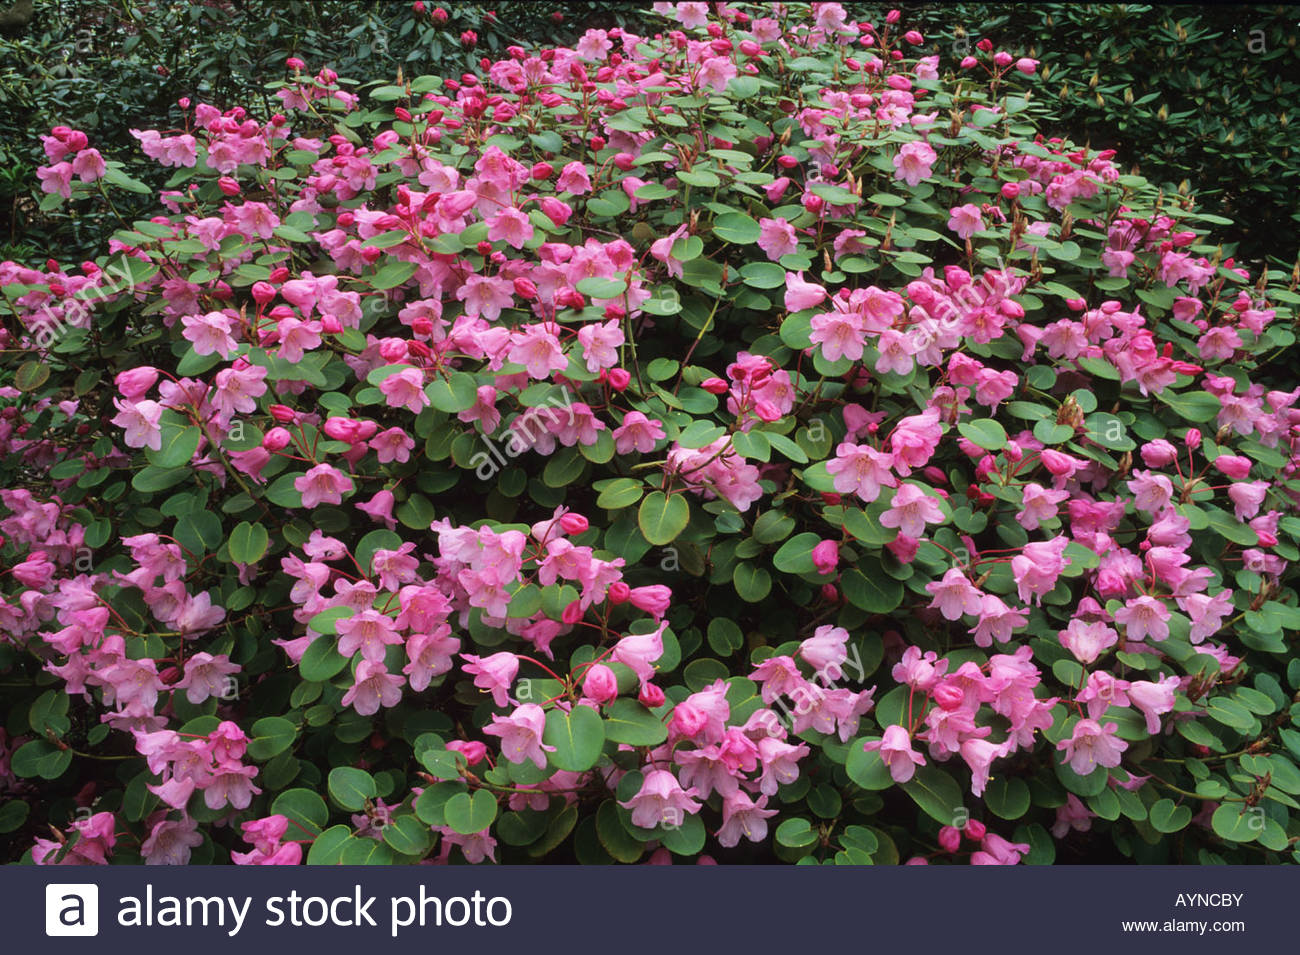 Temple bells blooms stock photos temple bells blooms stock images rhododendron temple bells spring flower shrub pink violet stock image mightylinksfo